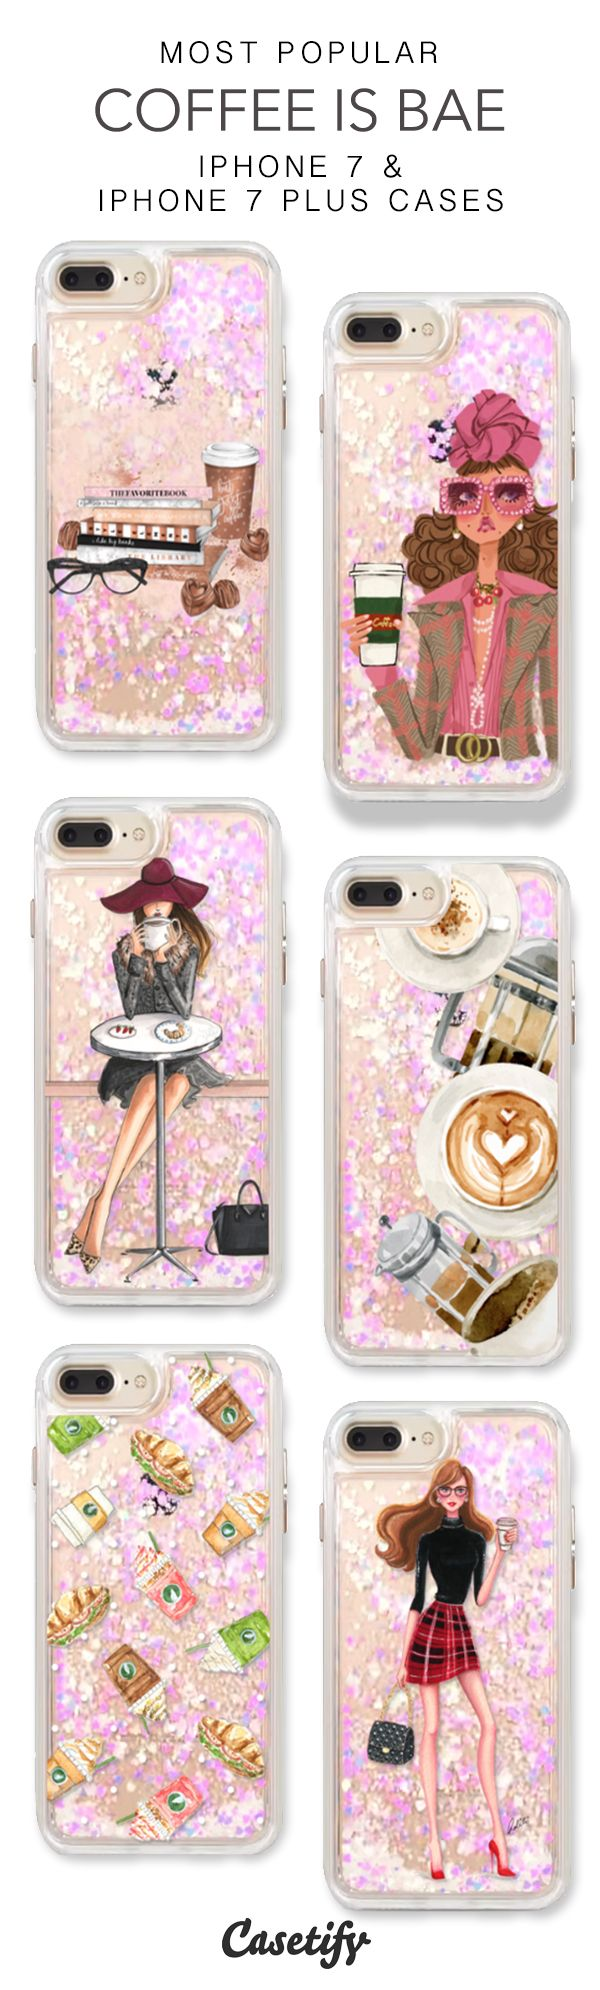 Most Popular Coffee Is Bae iPhone 7 Cases & iPhone 7 Plus Cases. More liquid glitter iPhone case here > https://www.casetify.com/en_US/collections/iphone-7-glitter-cases#/?vc=1qjpyjGdBB